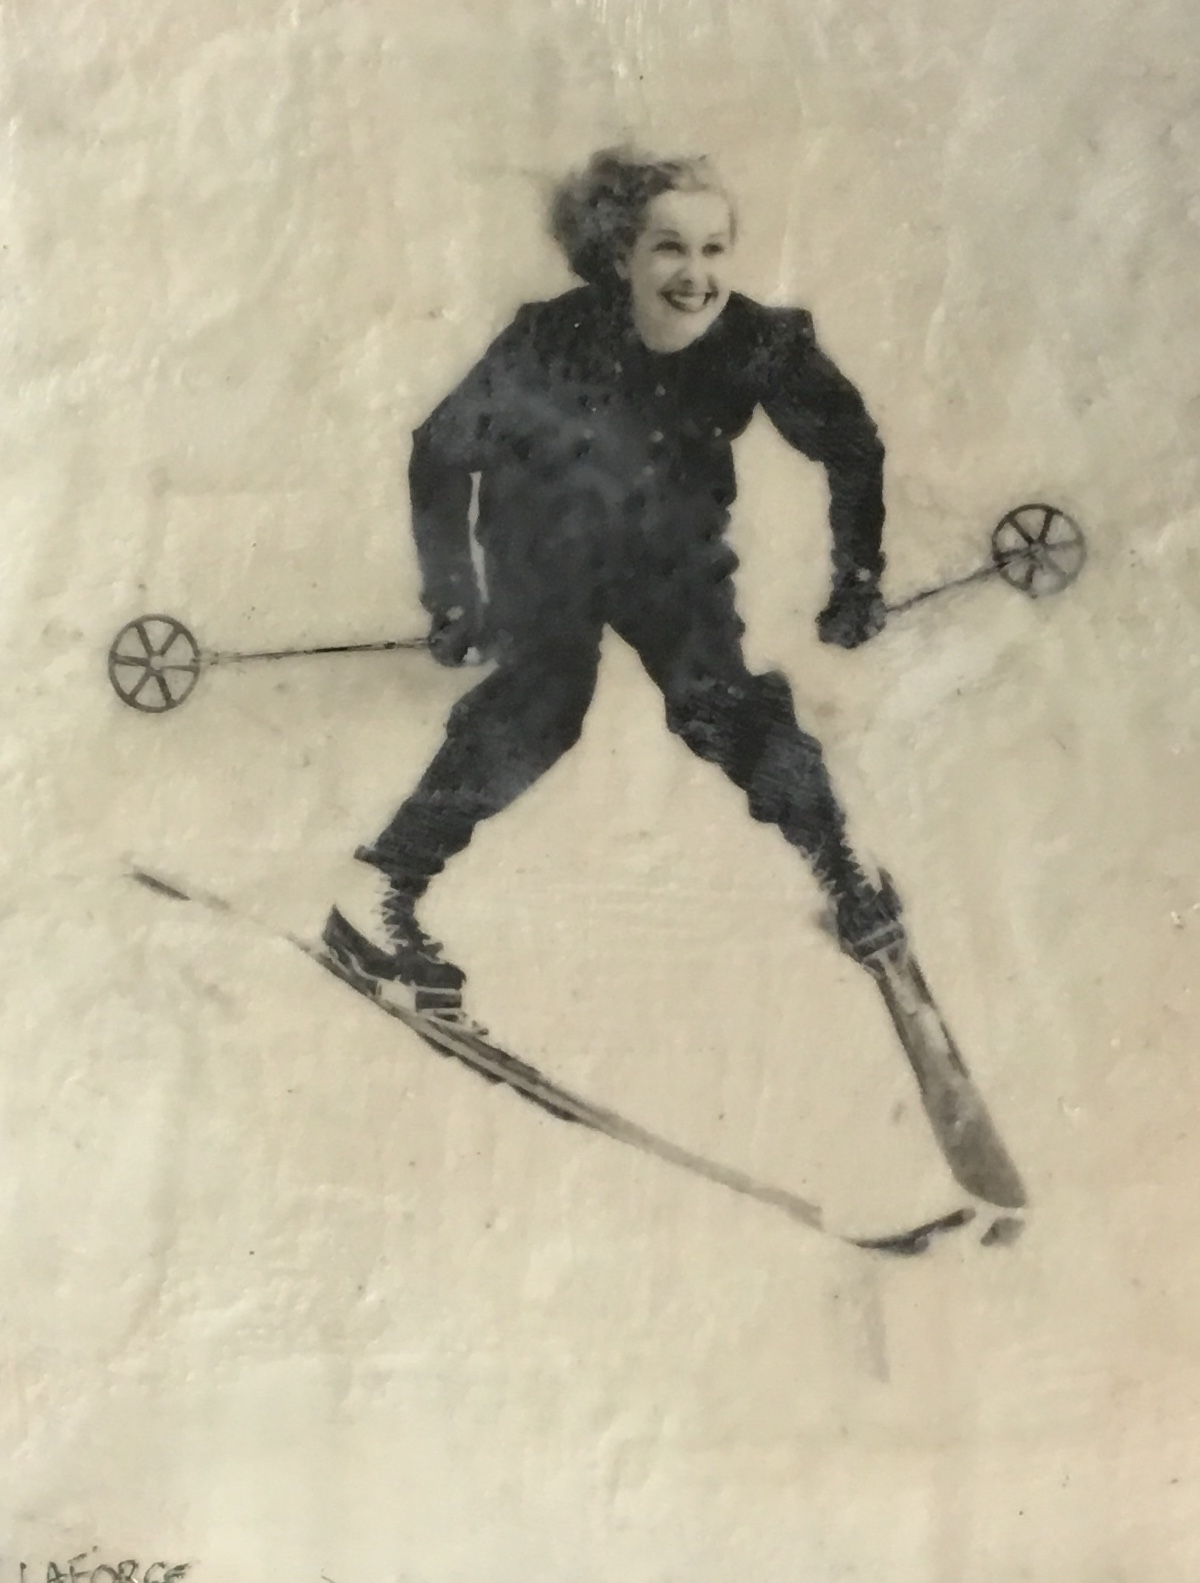 Vintage Skier 2, Encaustic painting by Lee Anne LaForge | Effusion Art Gallery + Cast Glass Studio, Invermere BC